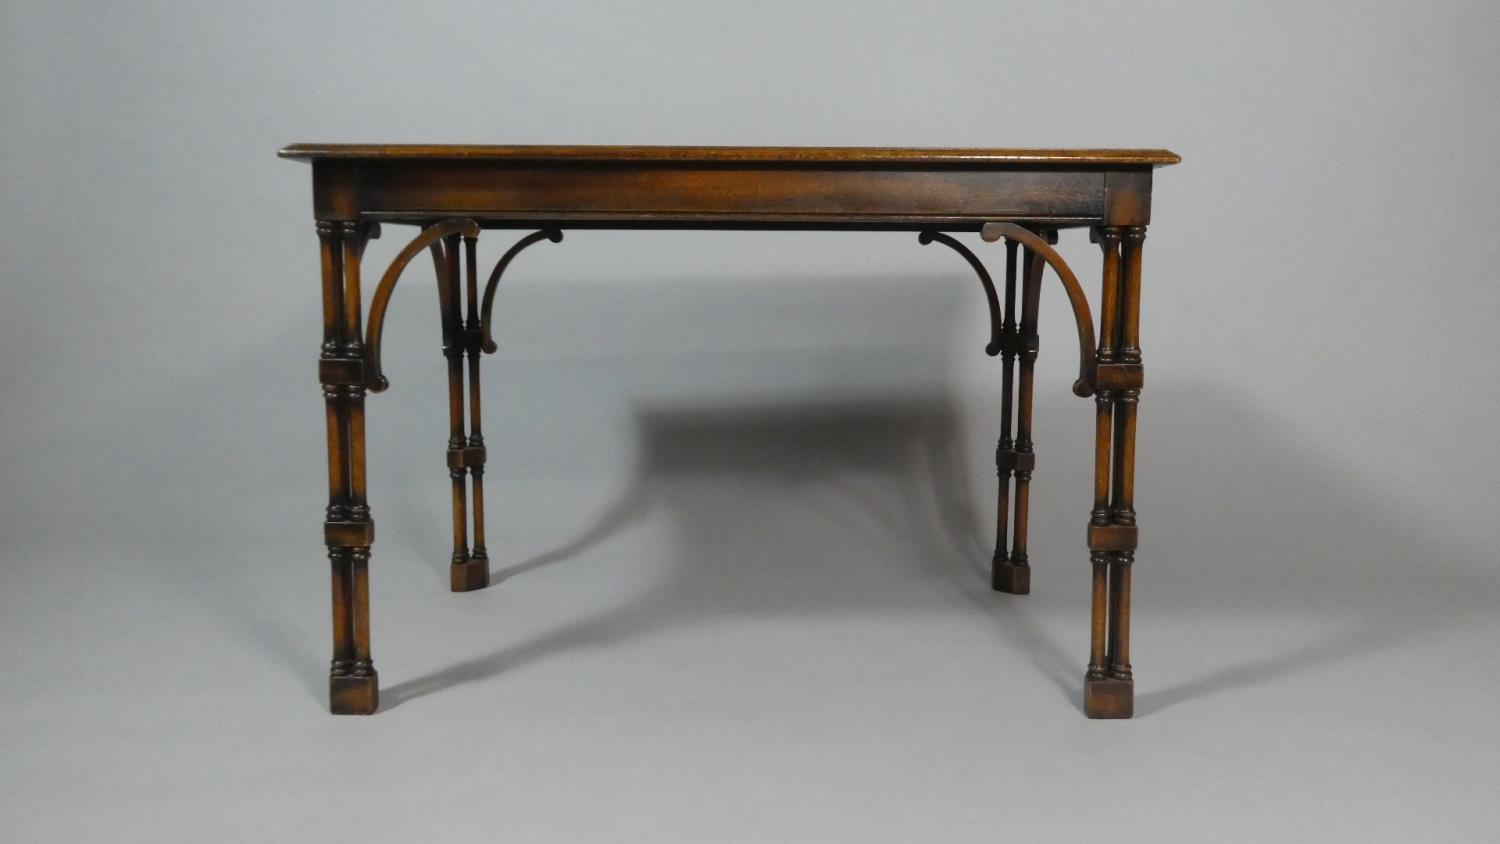 Lot 11 - A Reproduction Mahogany Occasional Table with Unusual Tri-Spindle Supports